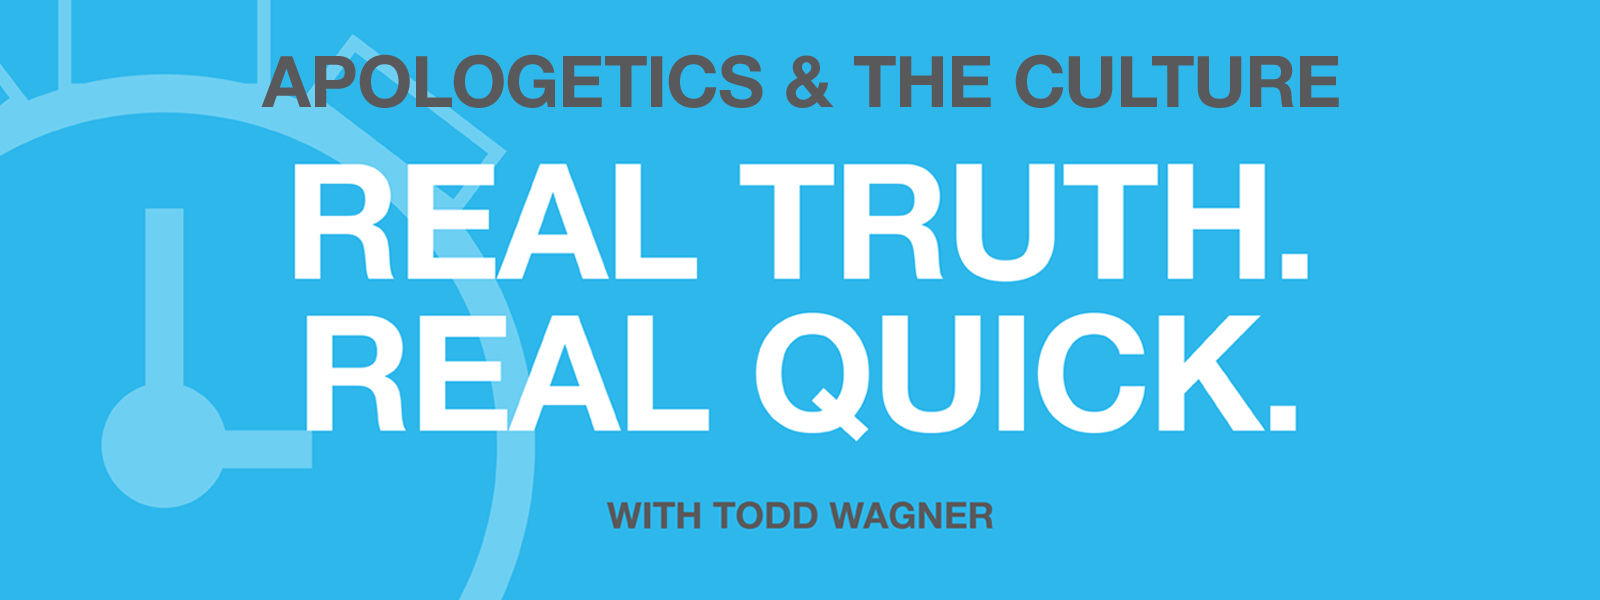 Apologetics & The Culture: Real Truth. Real Quick.